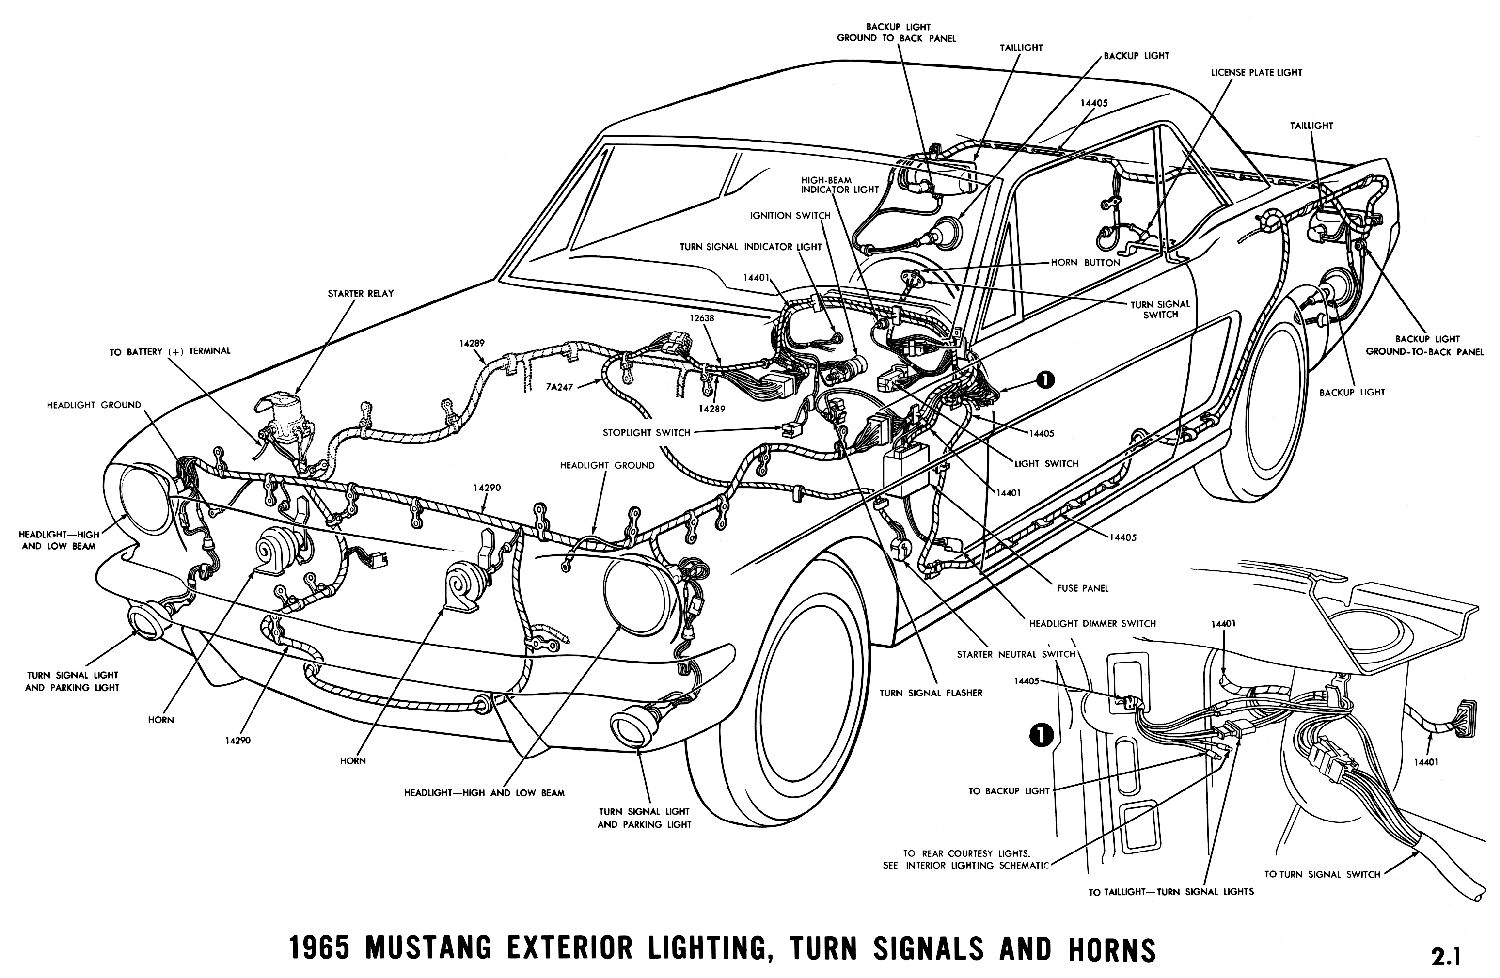 65 Mustang Tail Light Wiring Diagram Schematic Just Another 68 Ford For Lights Experience Of Rh Colregs Pro 1964